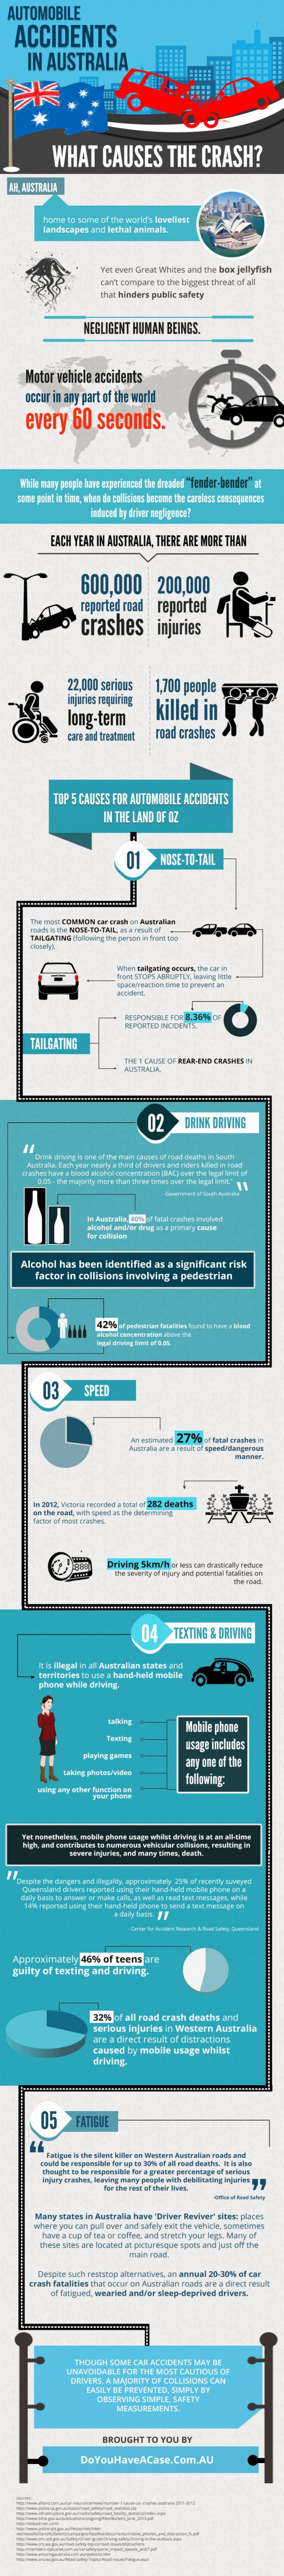 Automobile Accidents In Australia Infographic